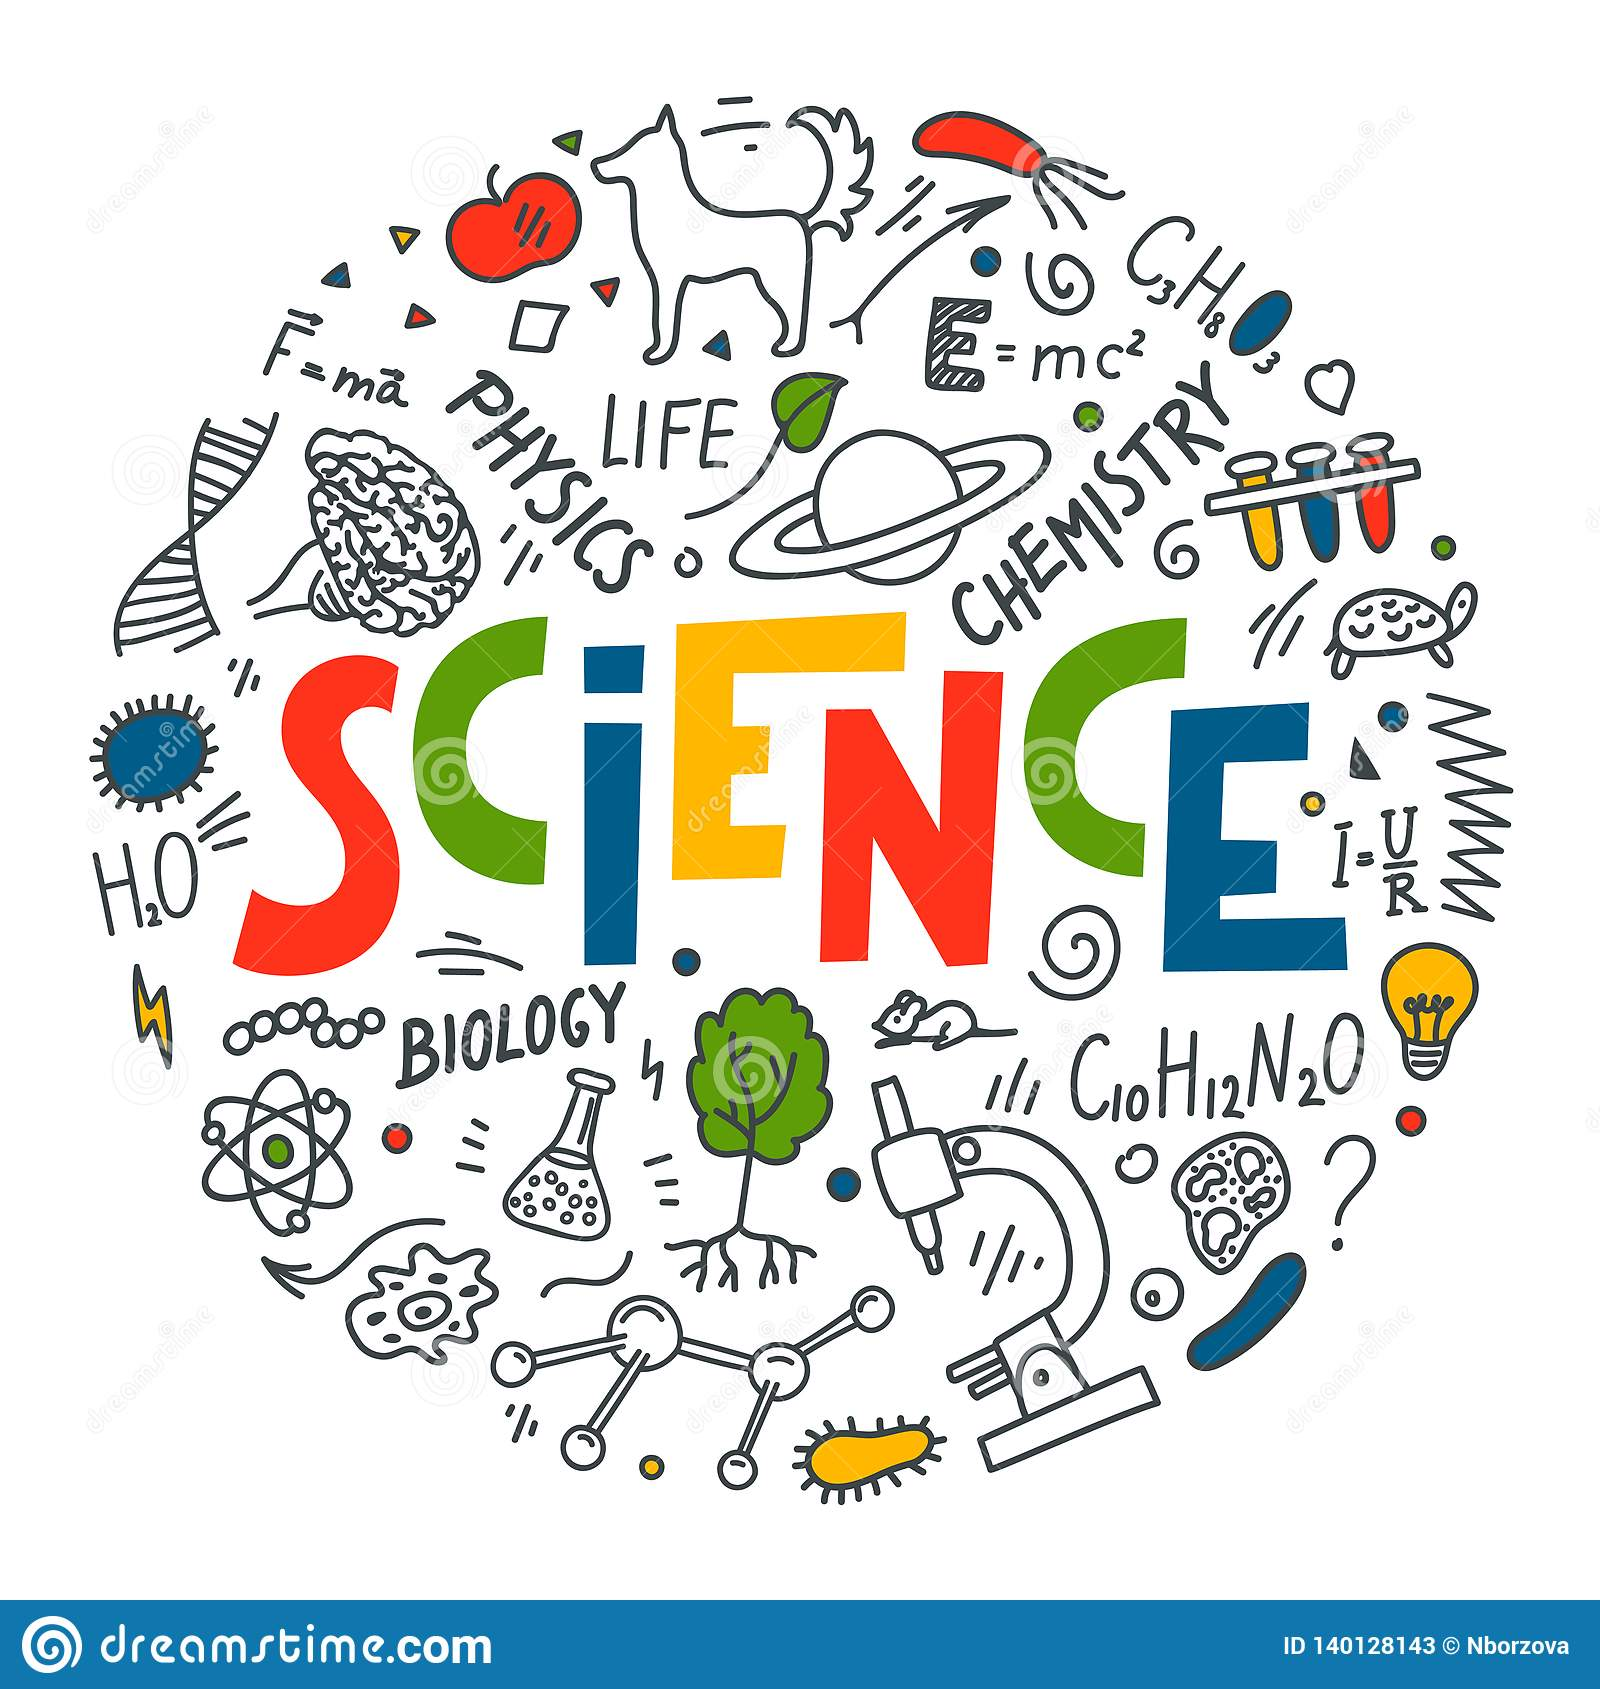 Unit 1: So You Want To Be A Scientist?